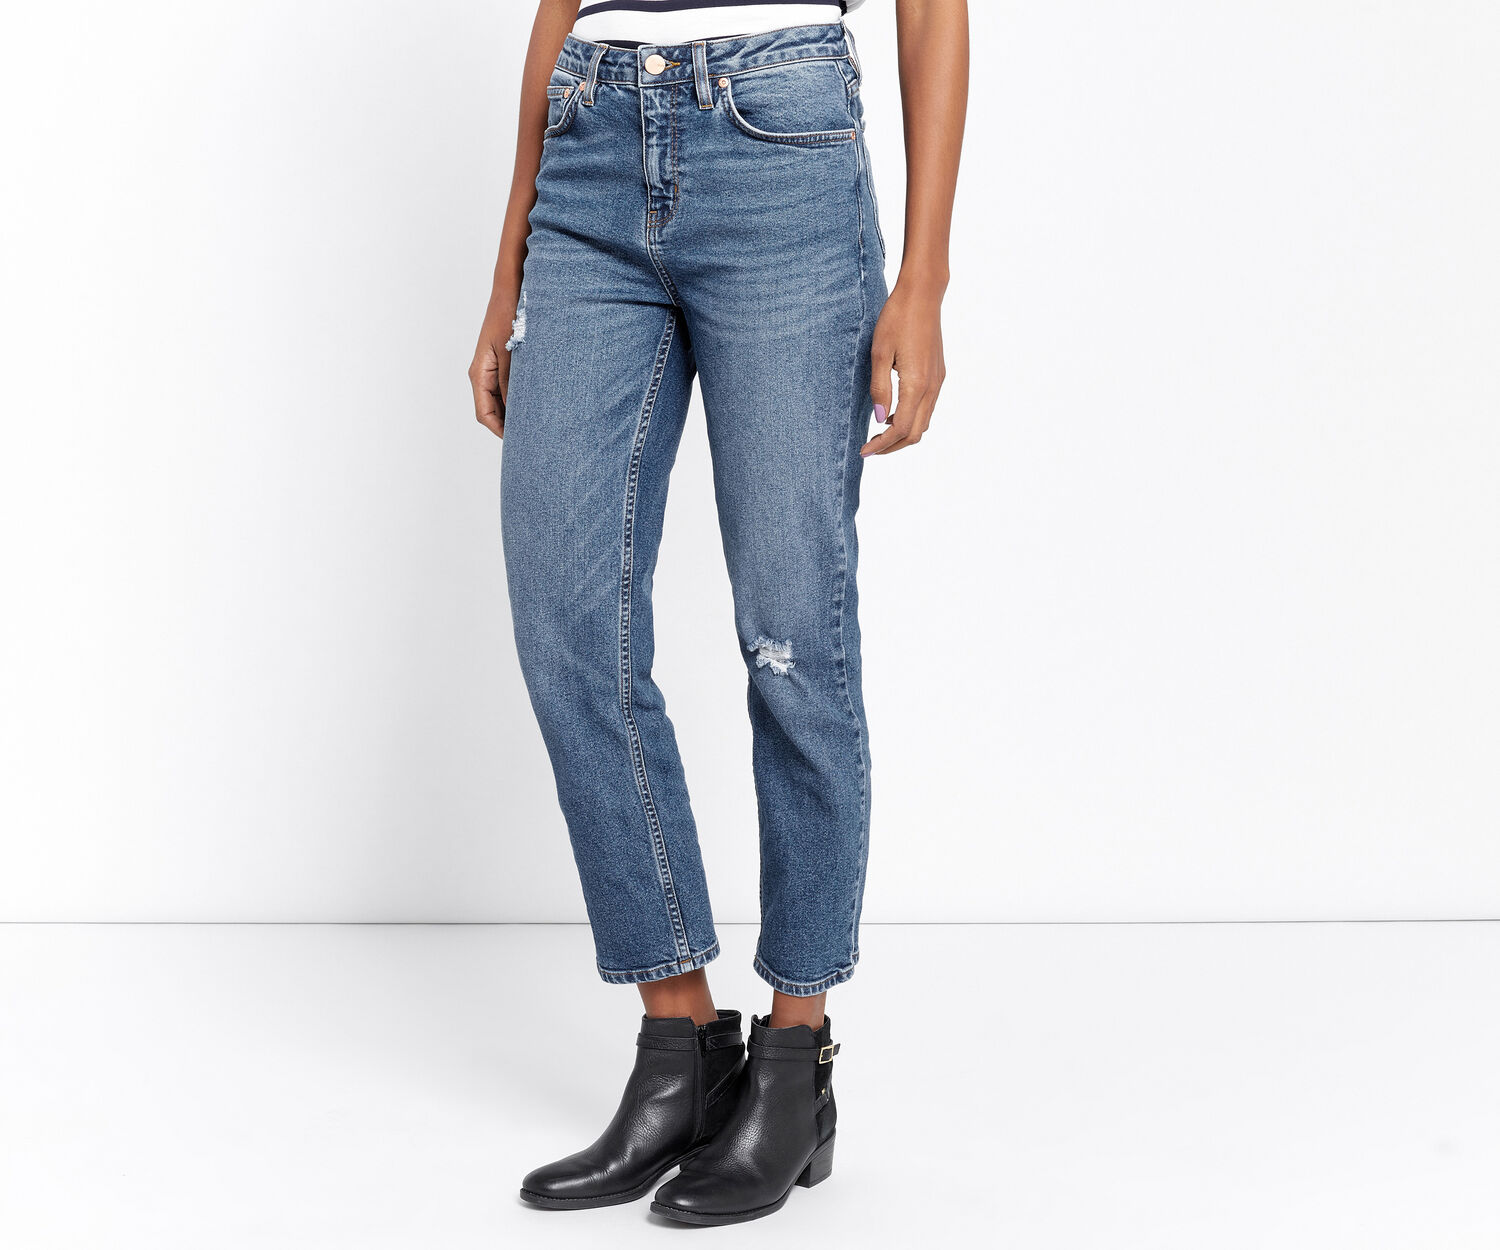 Oasis, SCENE-STEALING STRAIGHT JEANS Denim 1